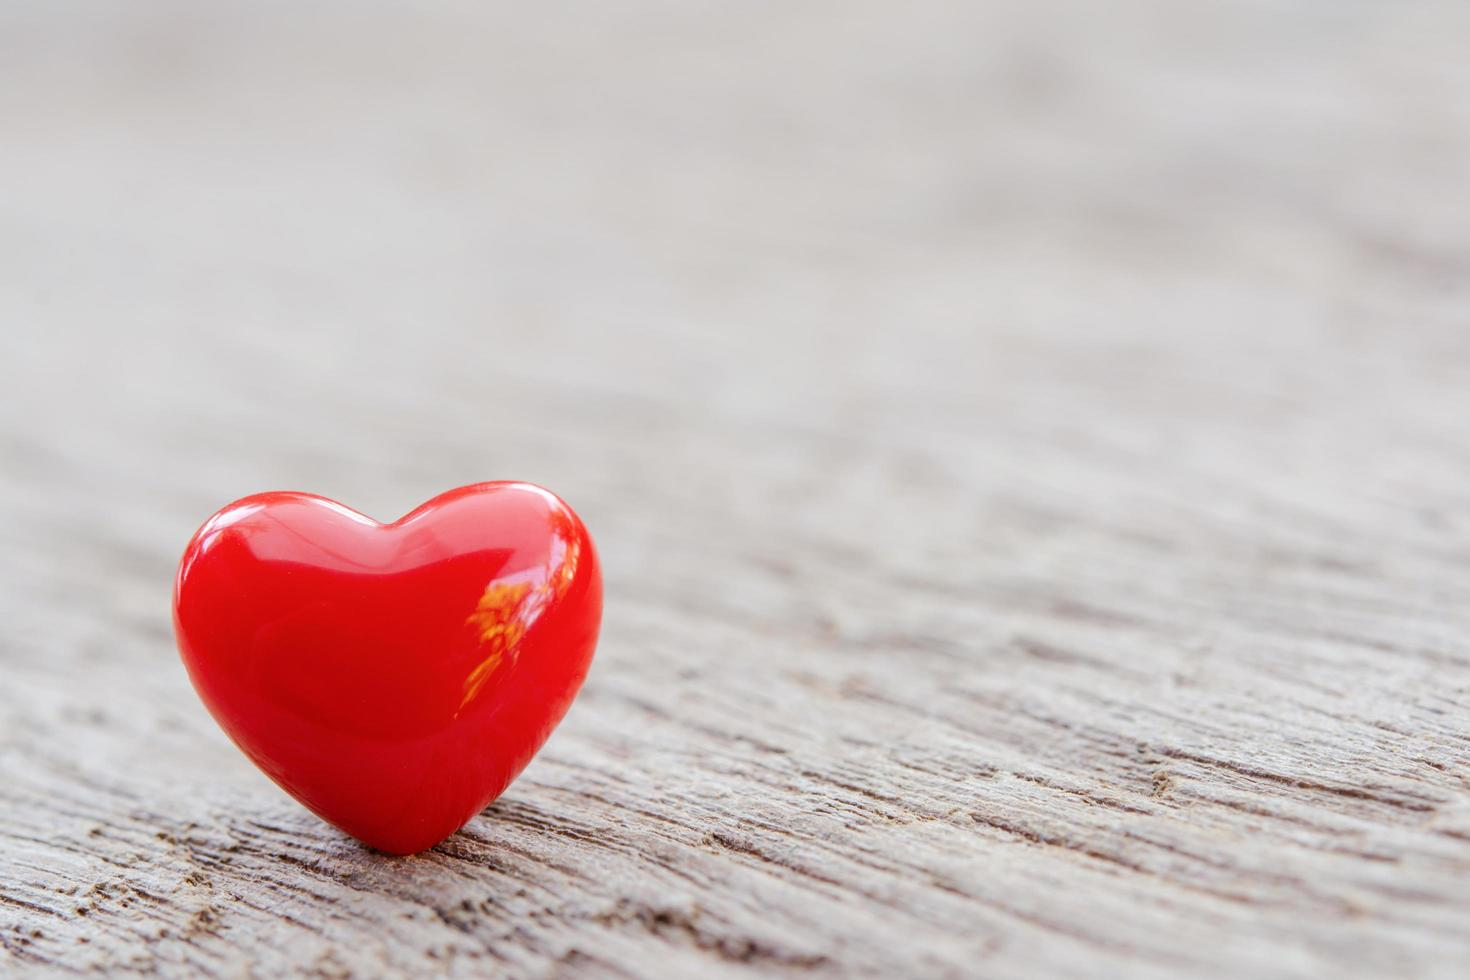 Red heart on wooden plank photo